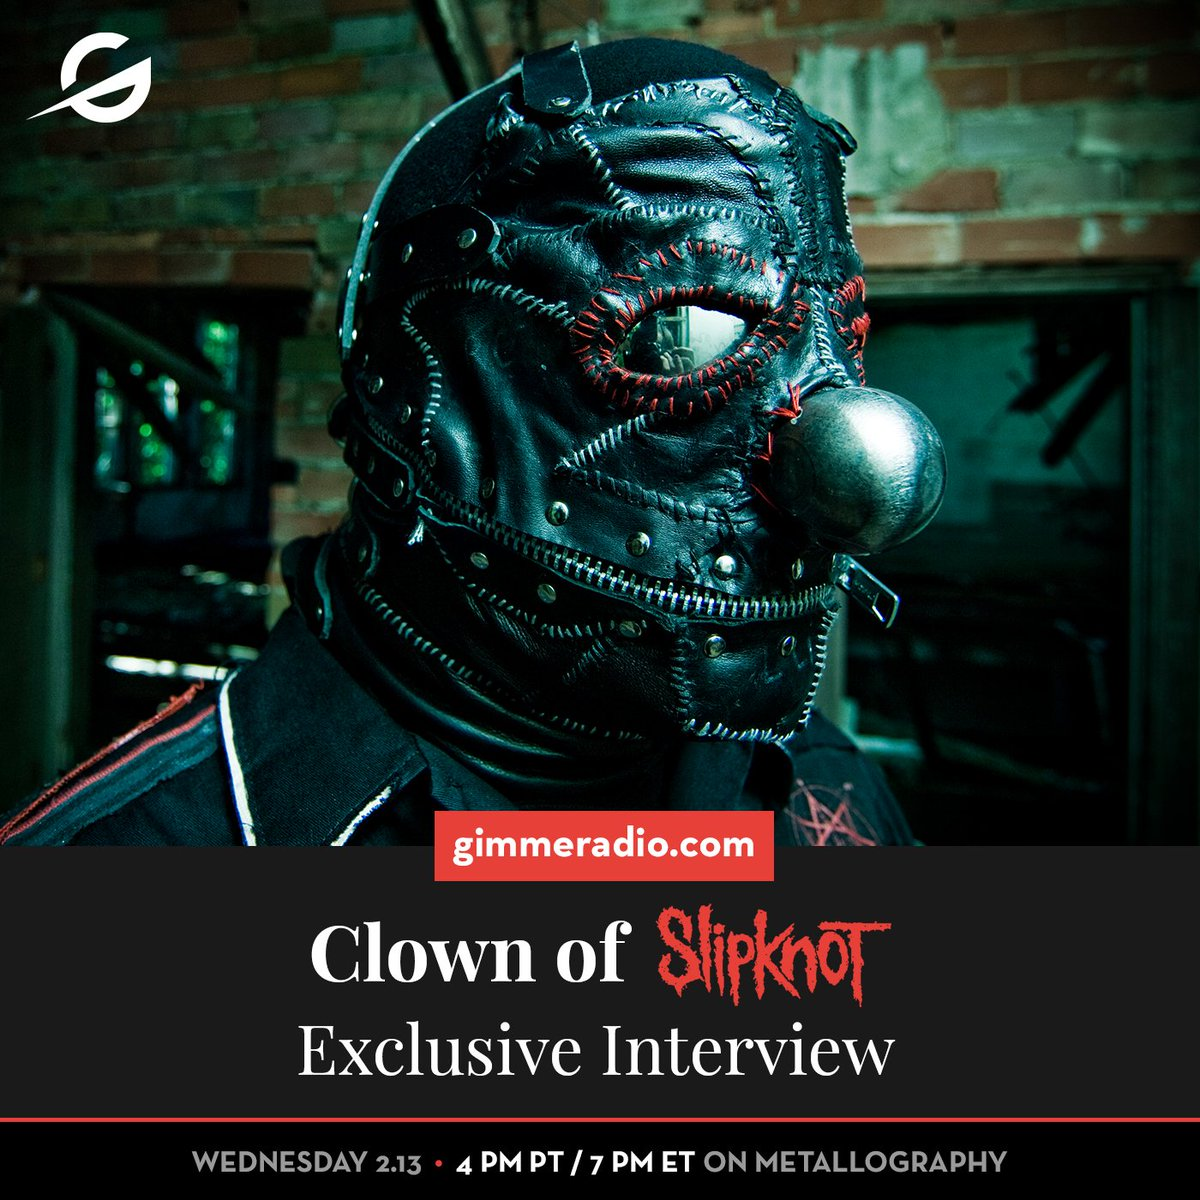 d52a1f7f7 Tune in 2/13 at 4pm PT / 7pm ET to hear him chat with Jon Wiederhorn on the  latest 'Metallography'. #slipknot #metallography  #gimmeradiopic.twitter.com/ ...